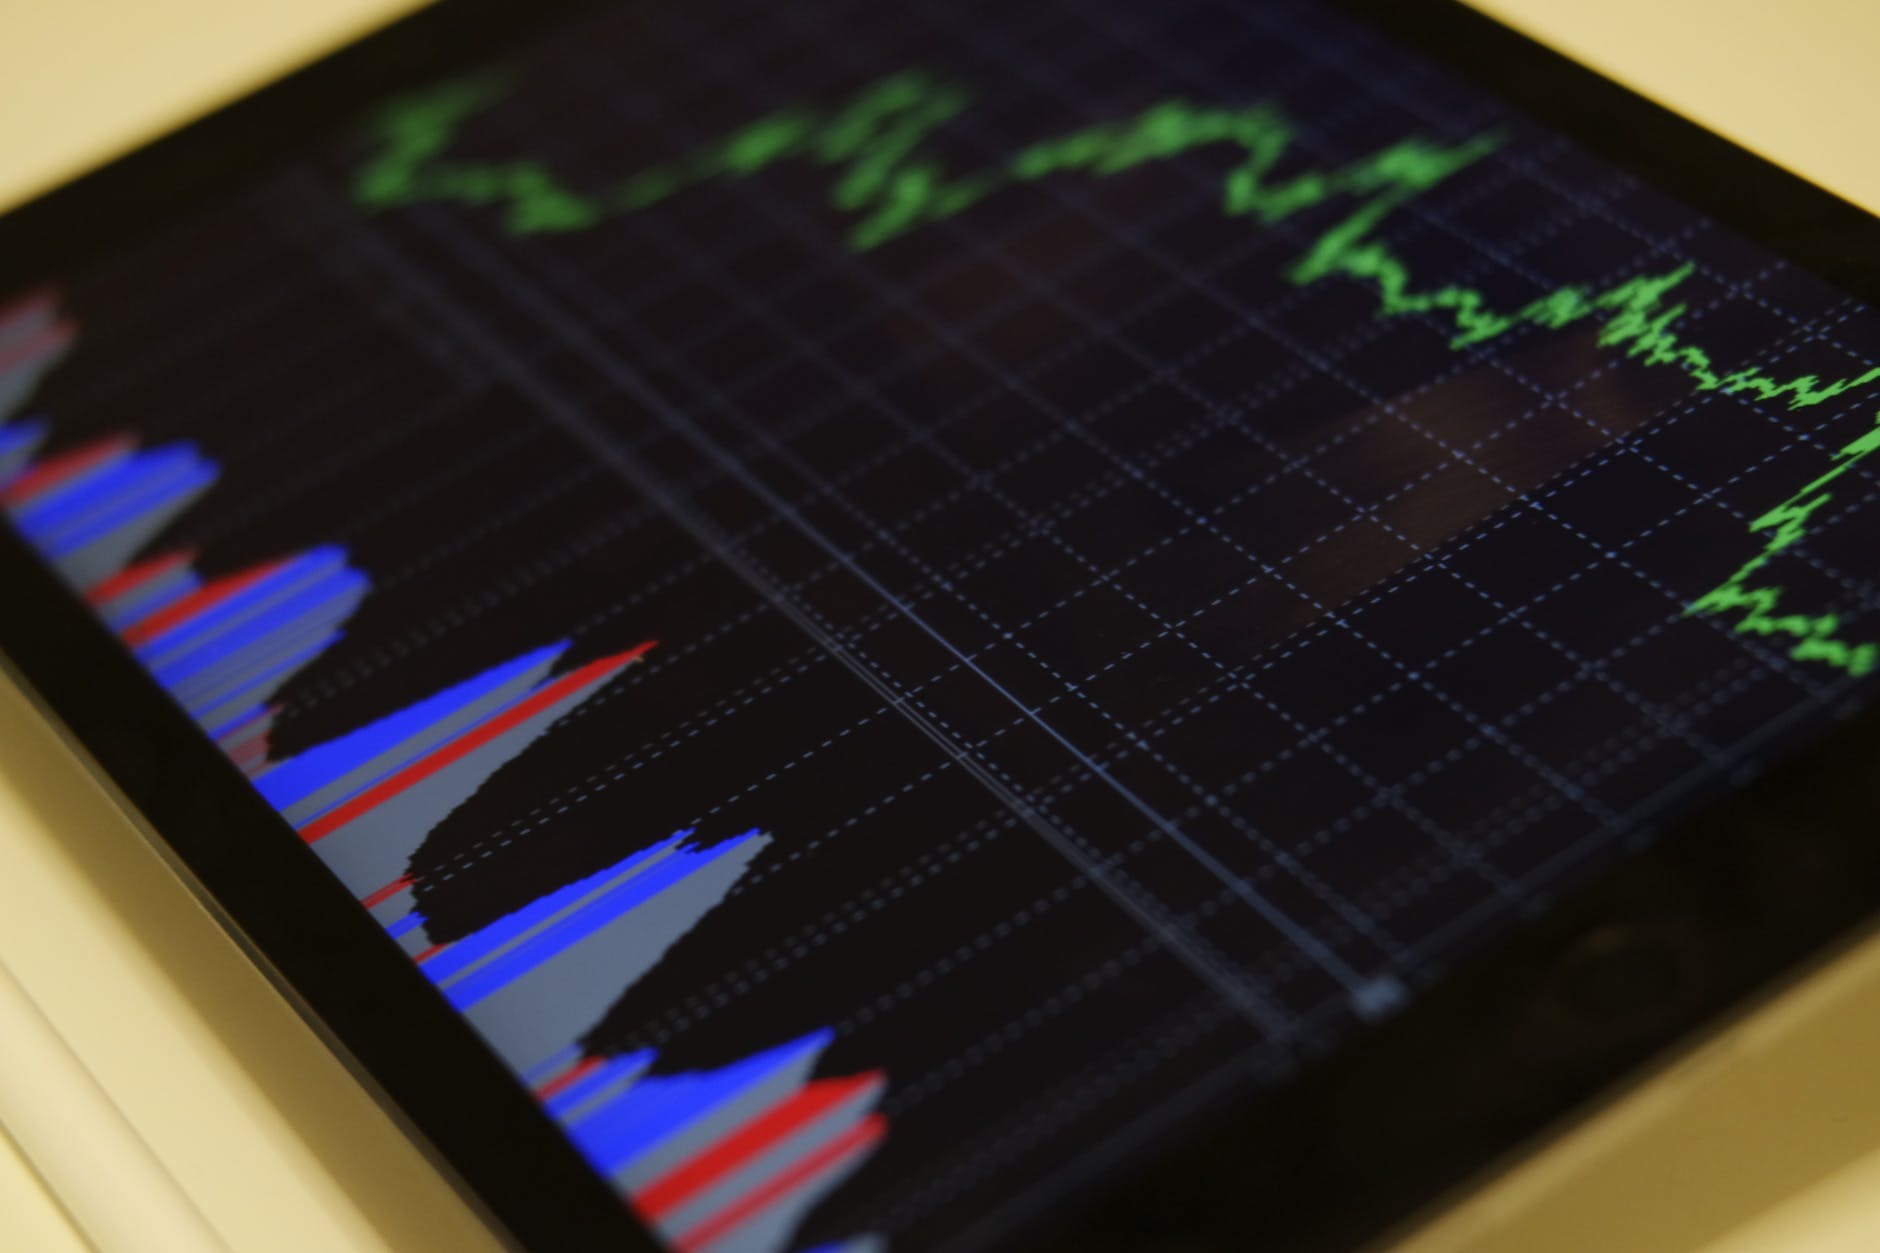 tablet with stock market graph